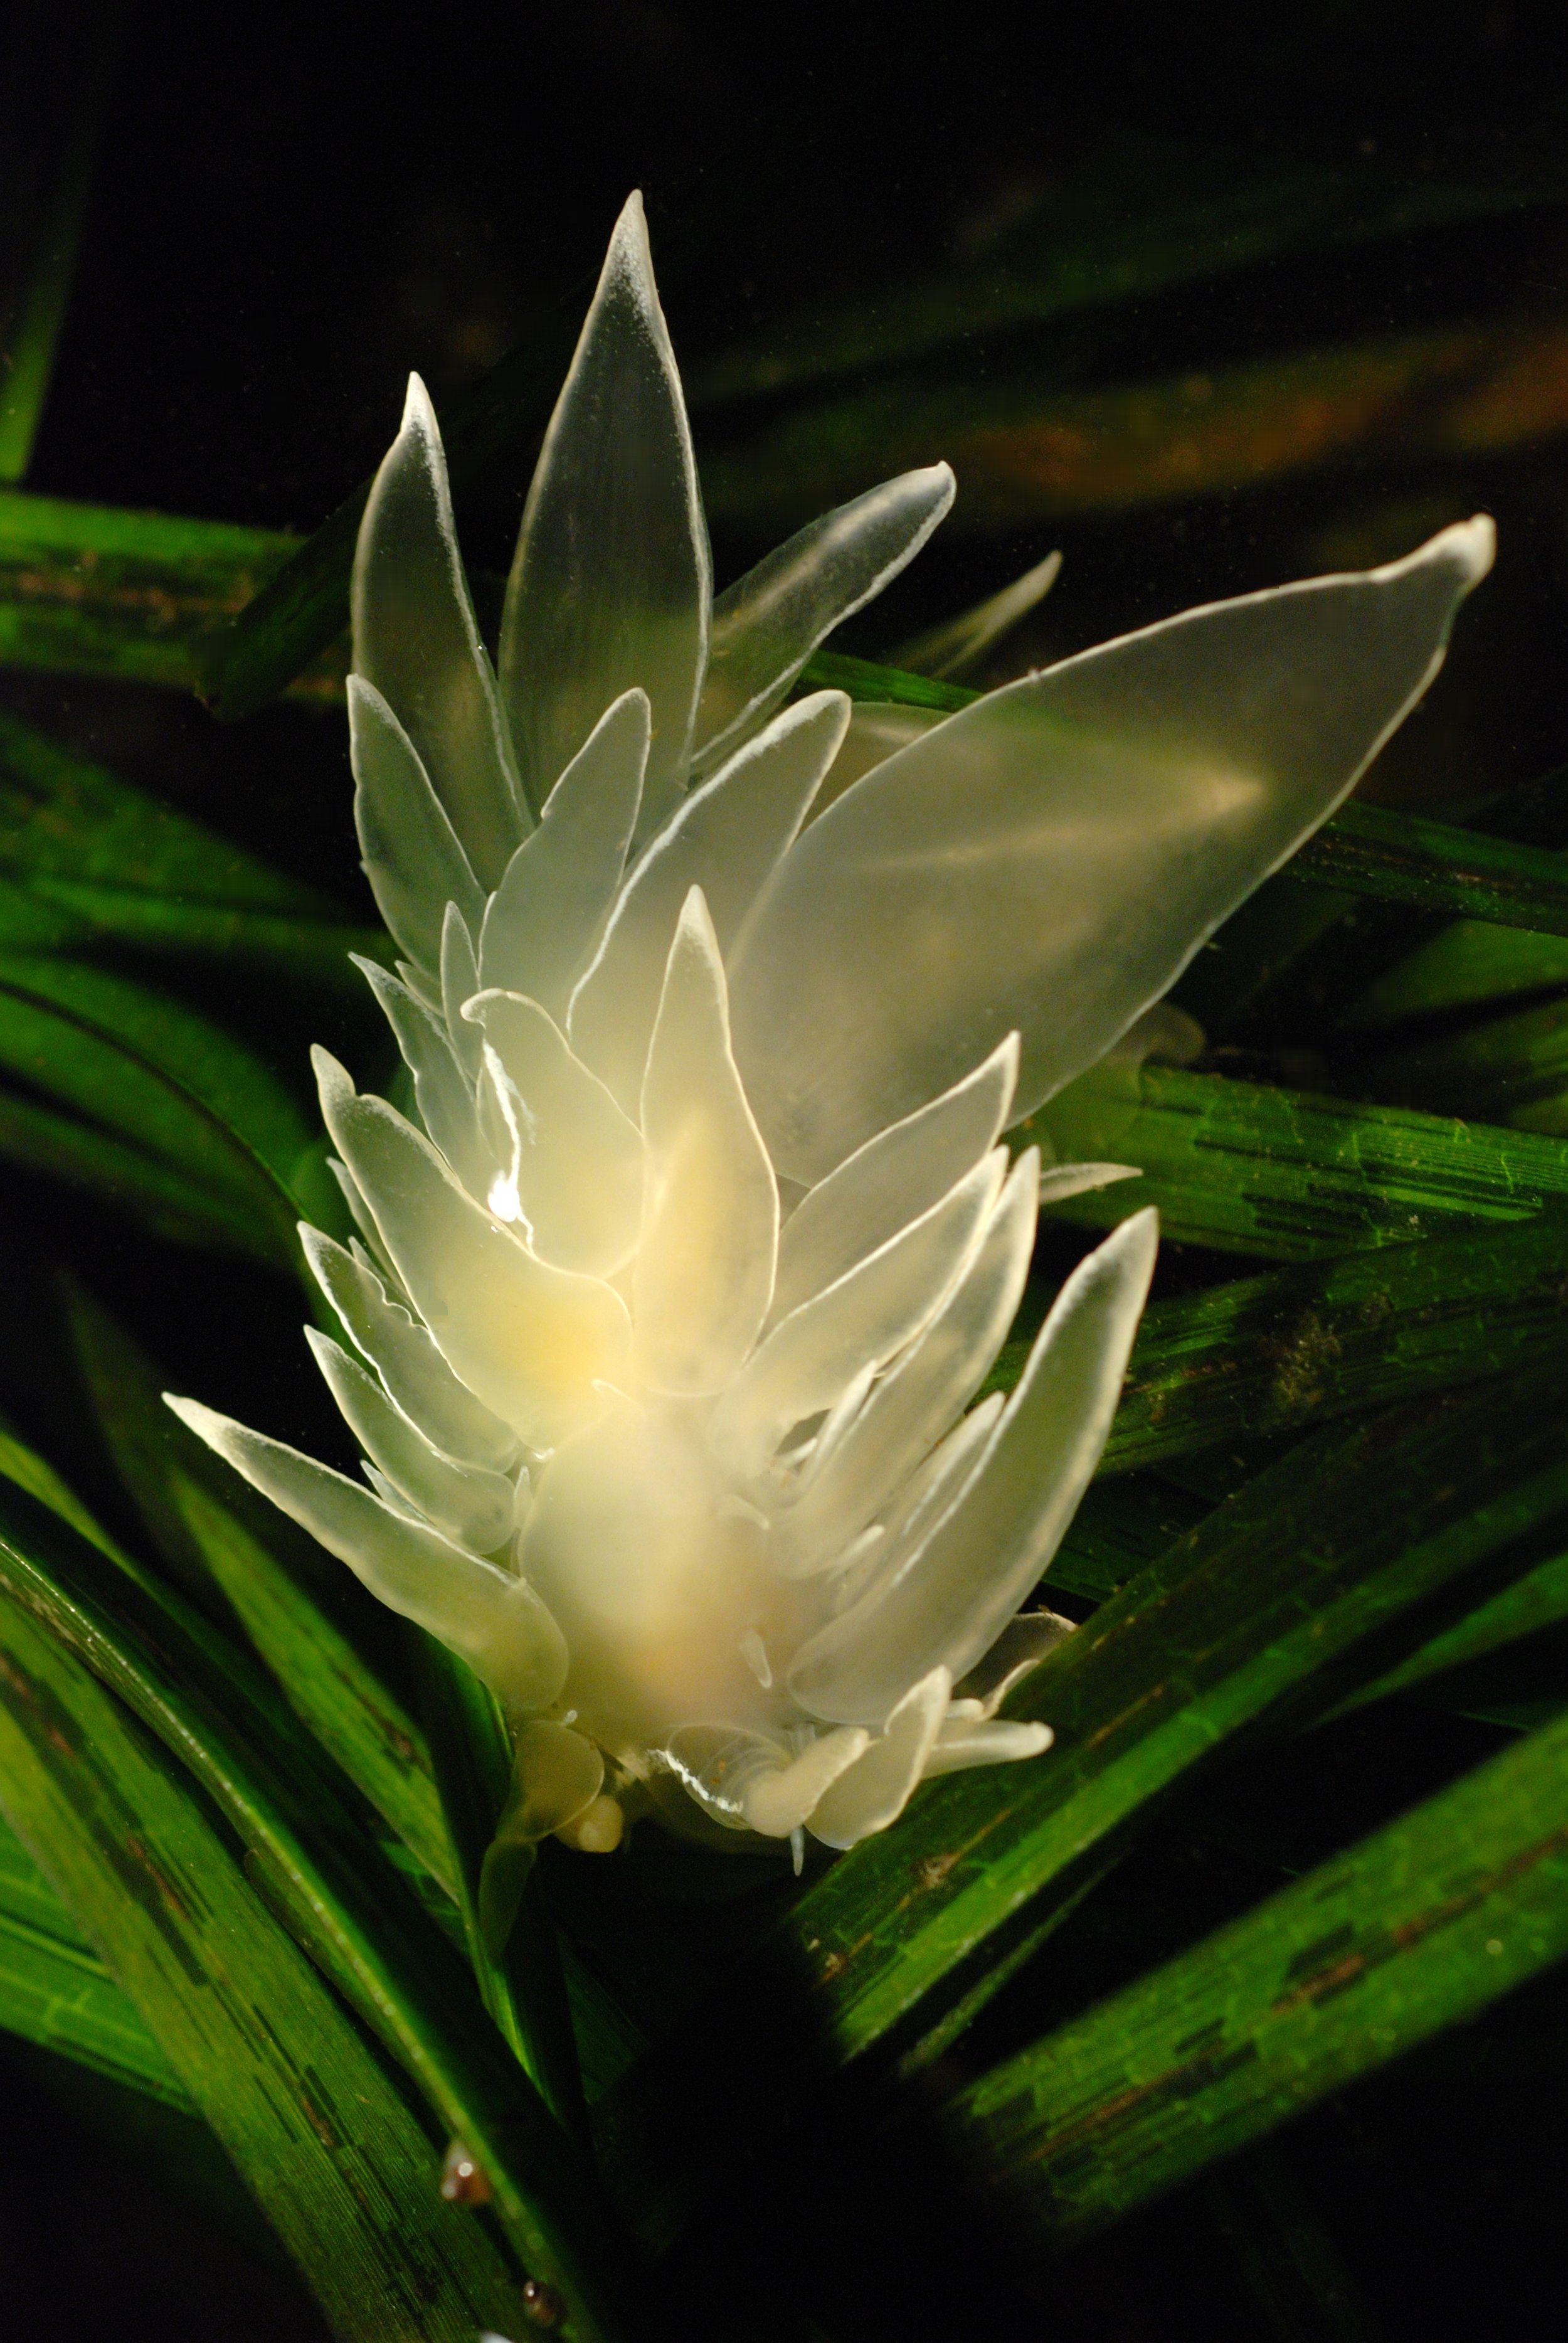 White-line eelgrass photo by Minette Layne